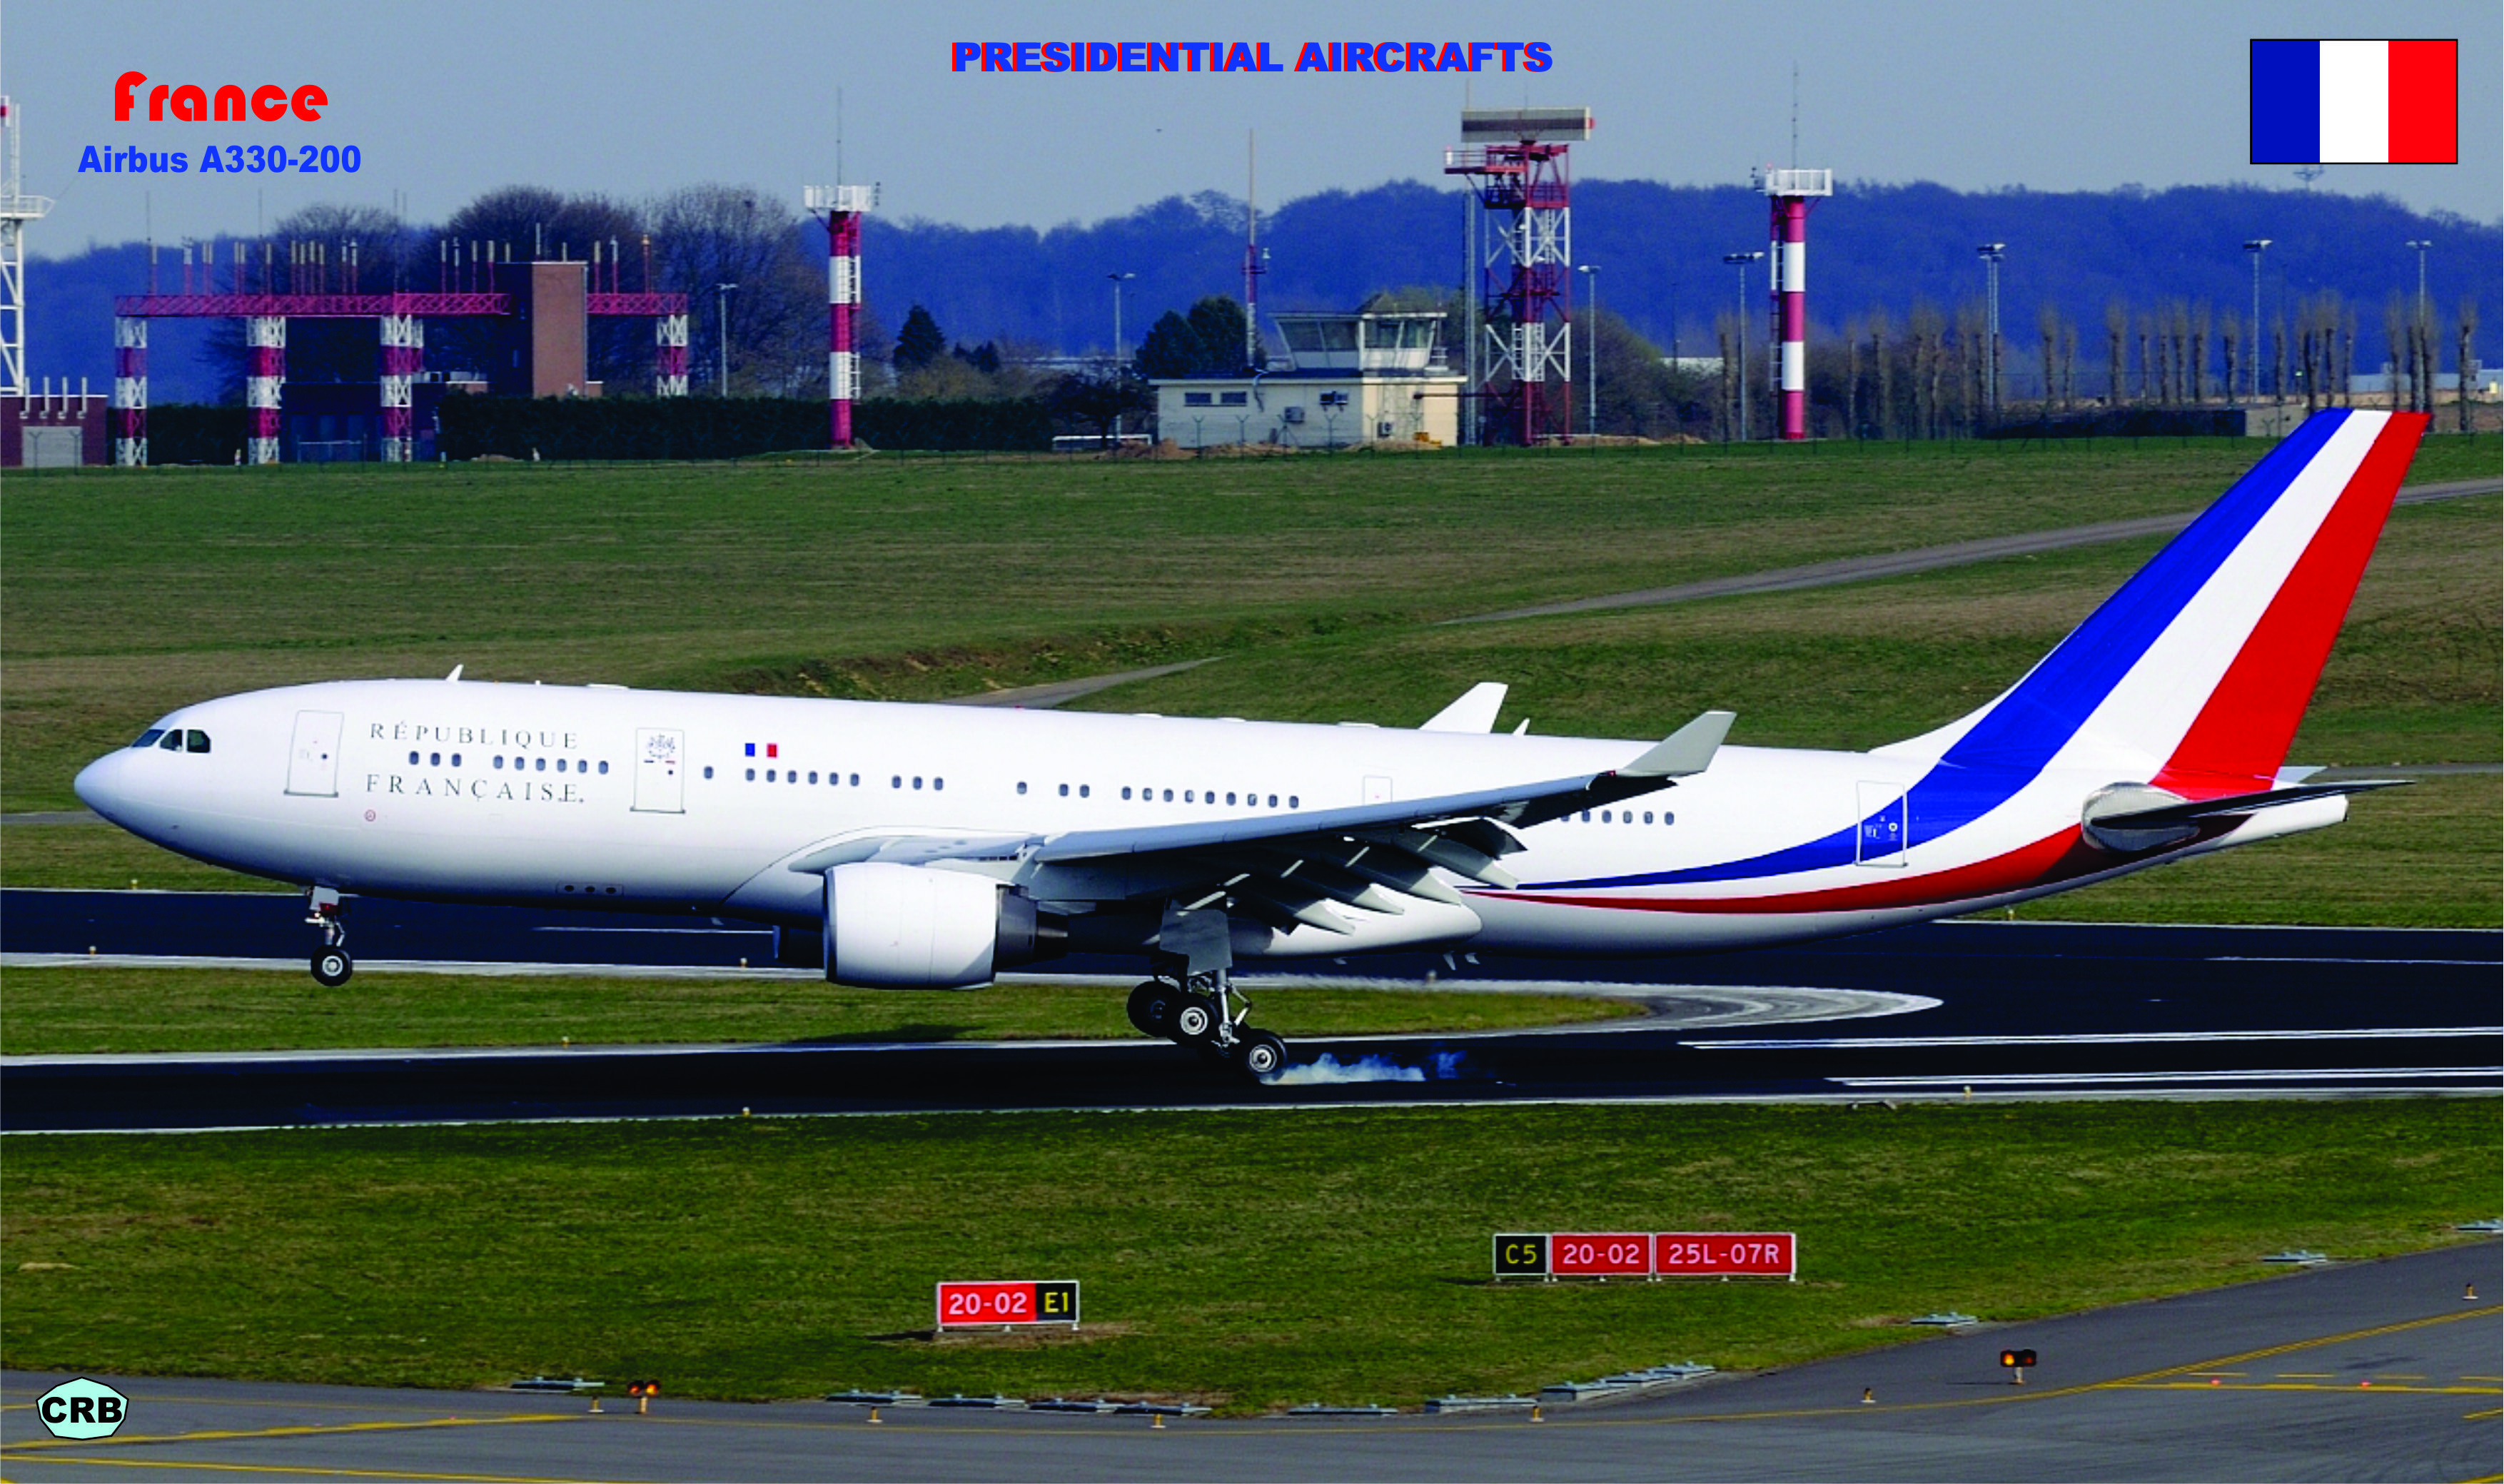 Presidential Aircraft of the France